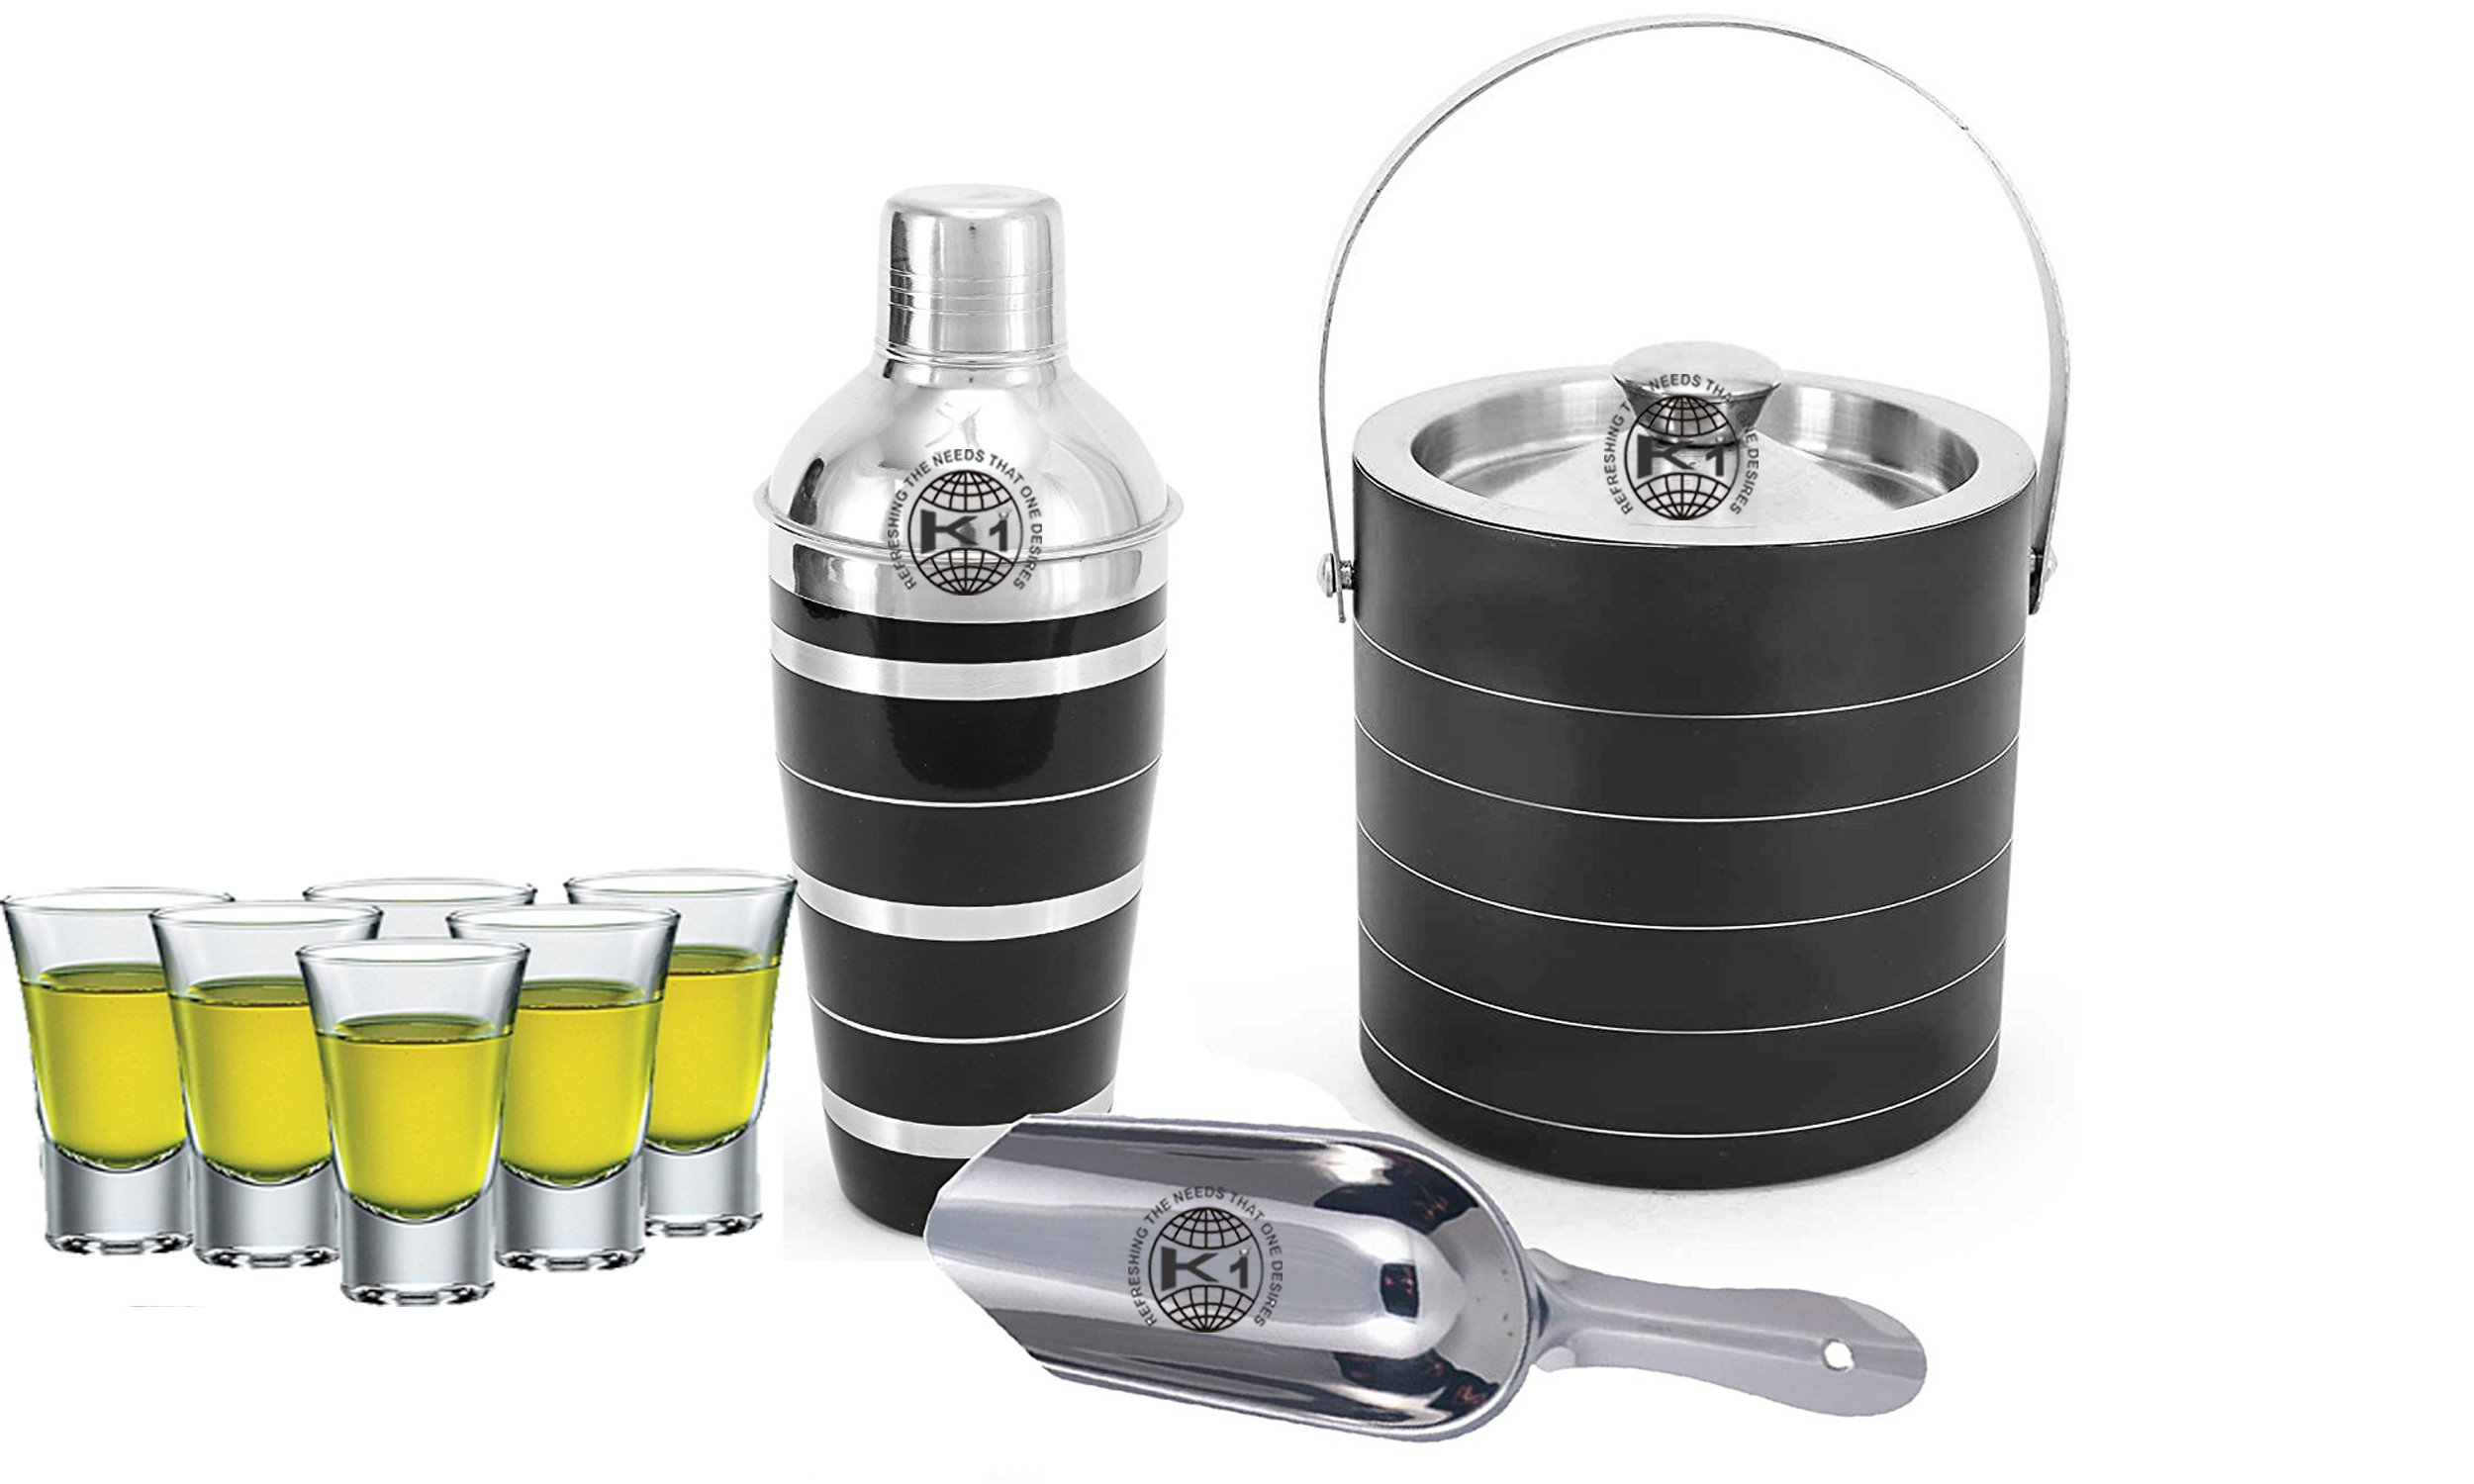 King International 100% Stainless Steel Bar Set | Bar Tools | Bar Accessories Set Of 9 Pieces Includes 6 Shot Glasses | Ice Bucket | Cocktail Shaker | Ice Picker |